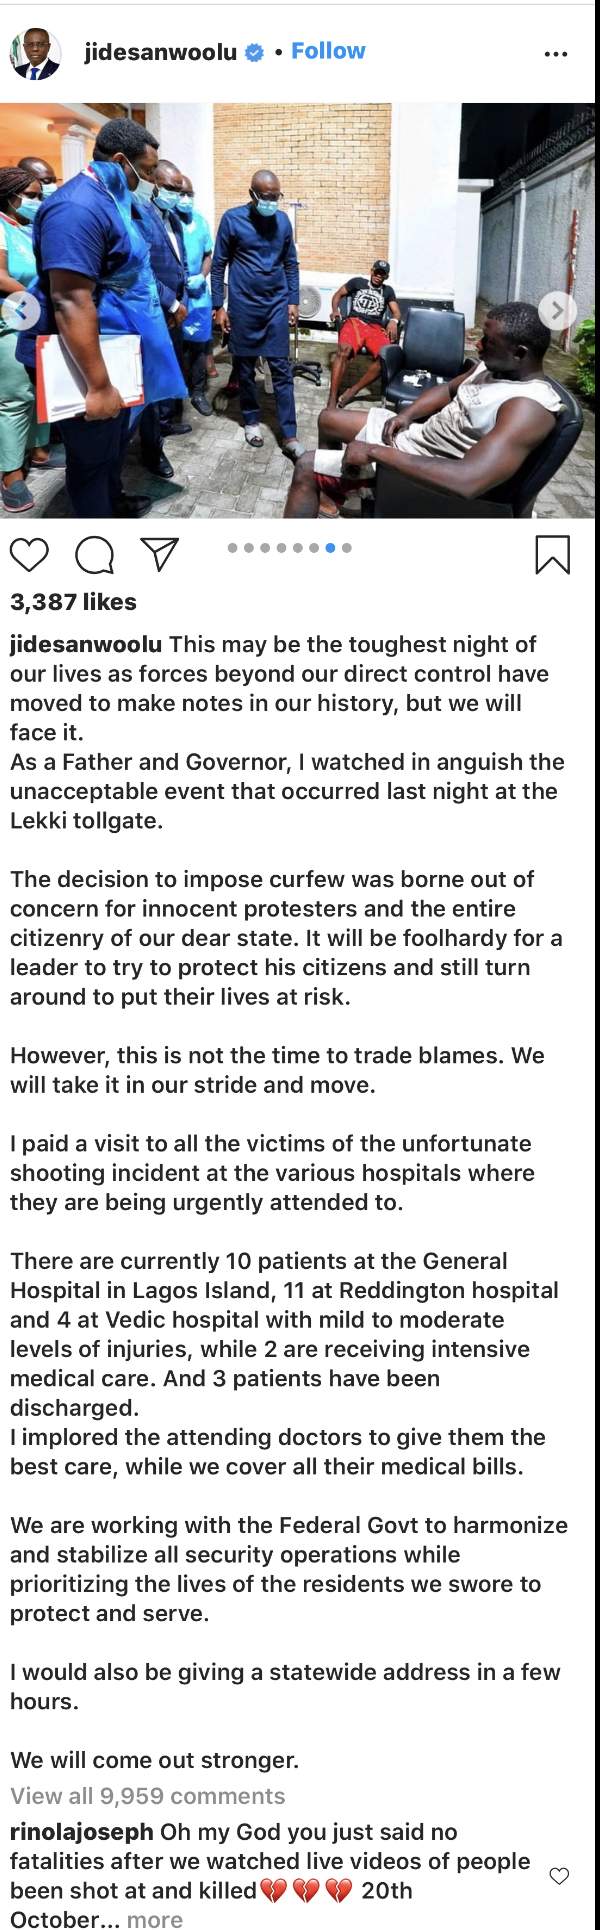 The governor's statement